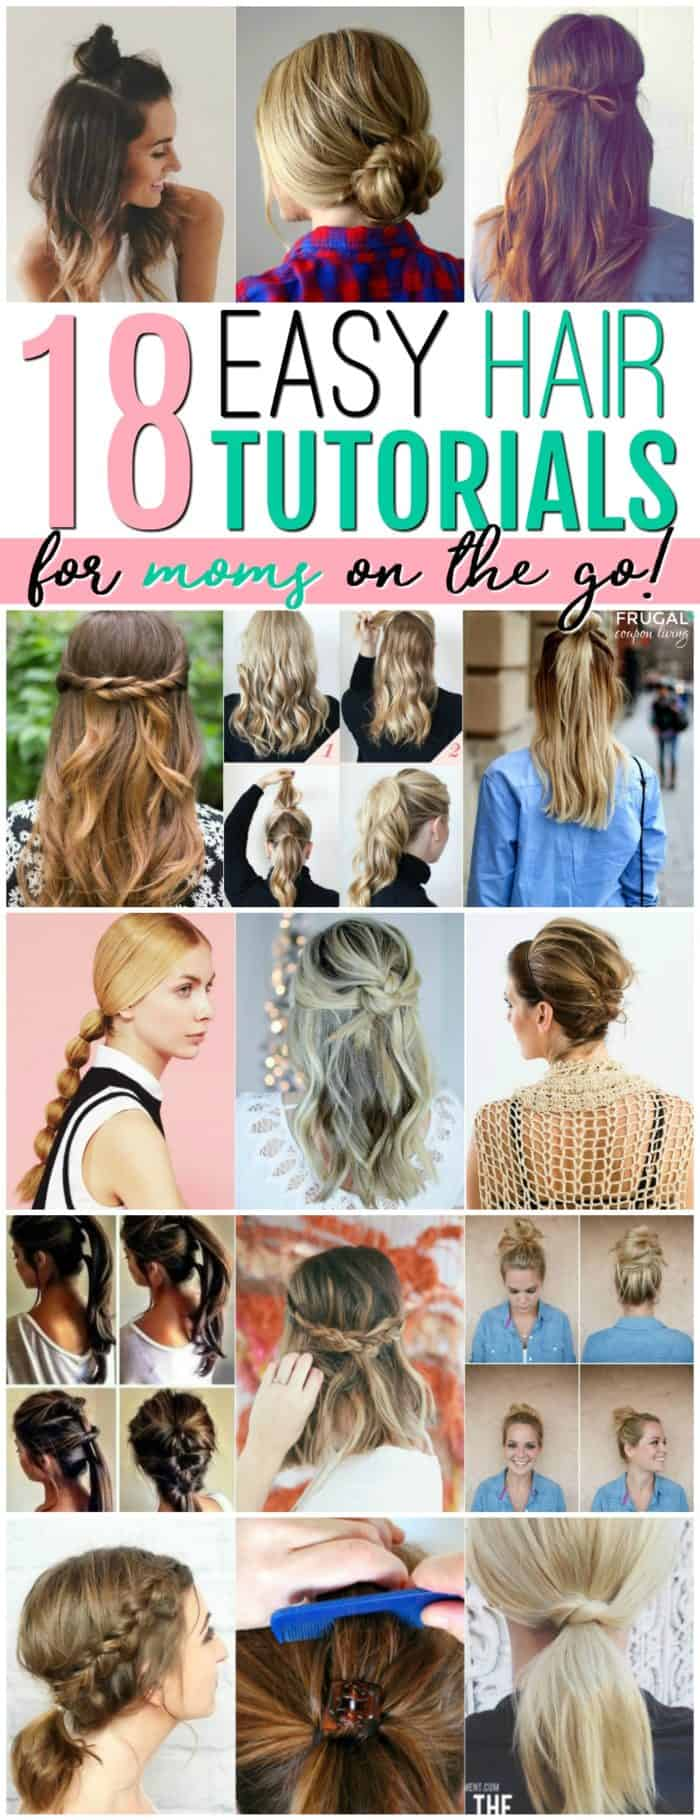 Easy Hairstyles for Mom